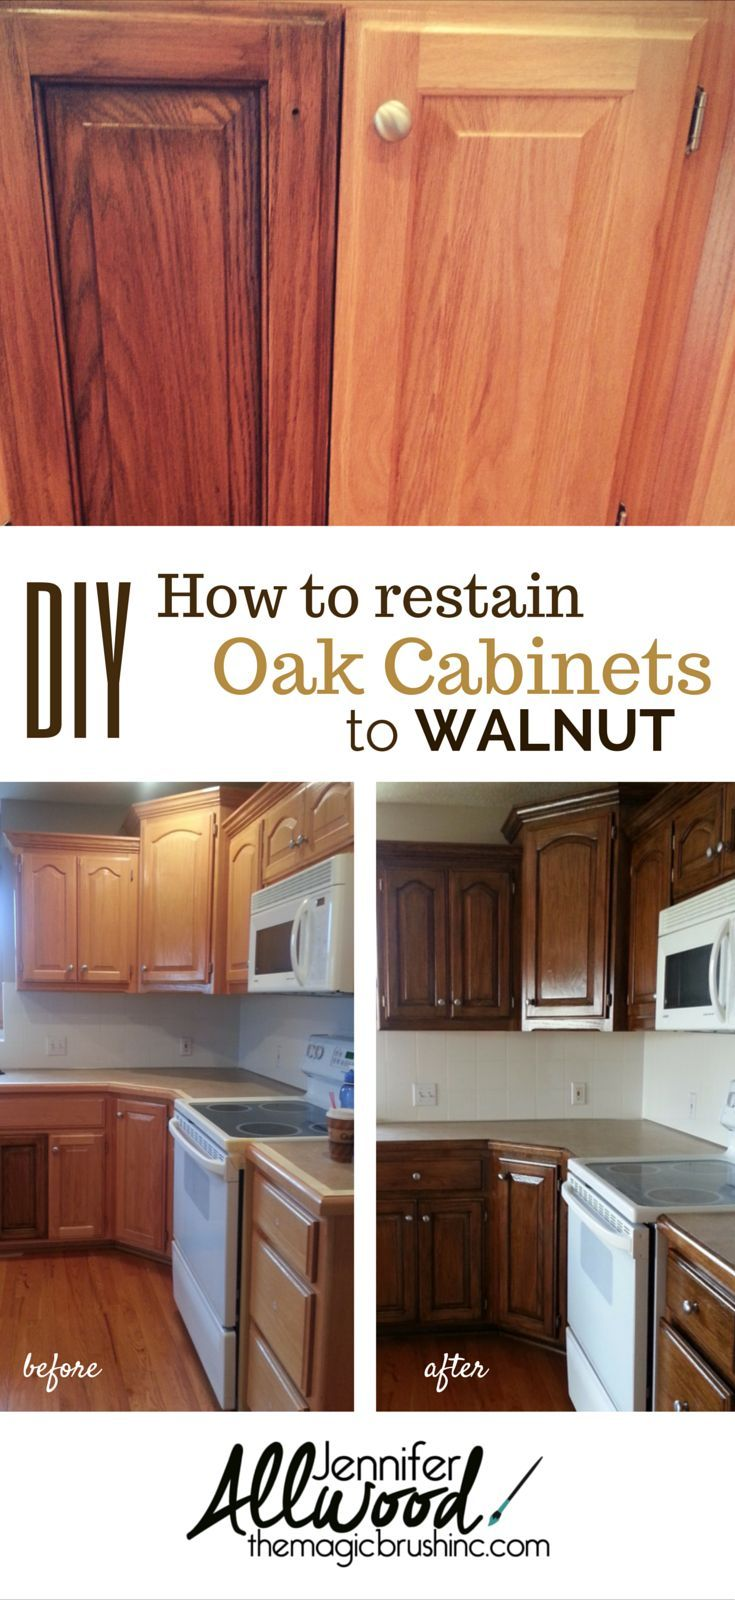 Cabinets and furniture finishes dark walnut stain for Darken kitchen cabinets